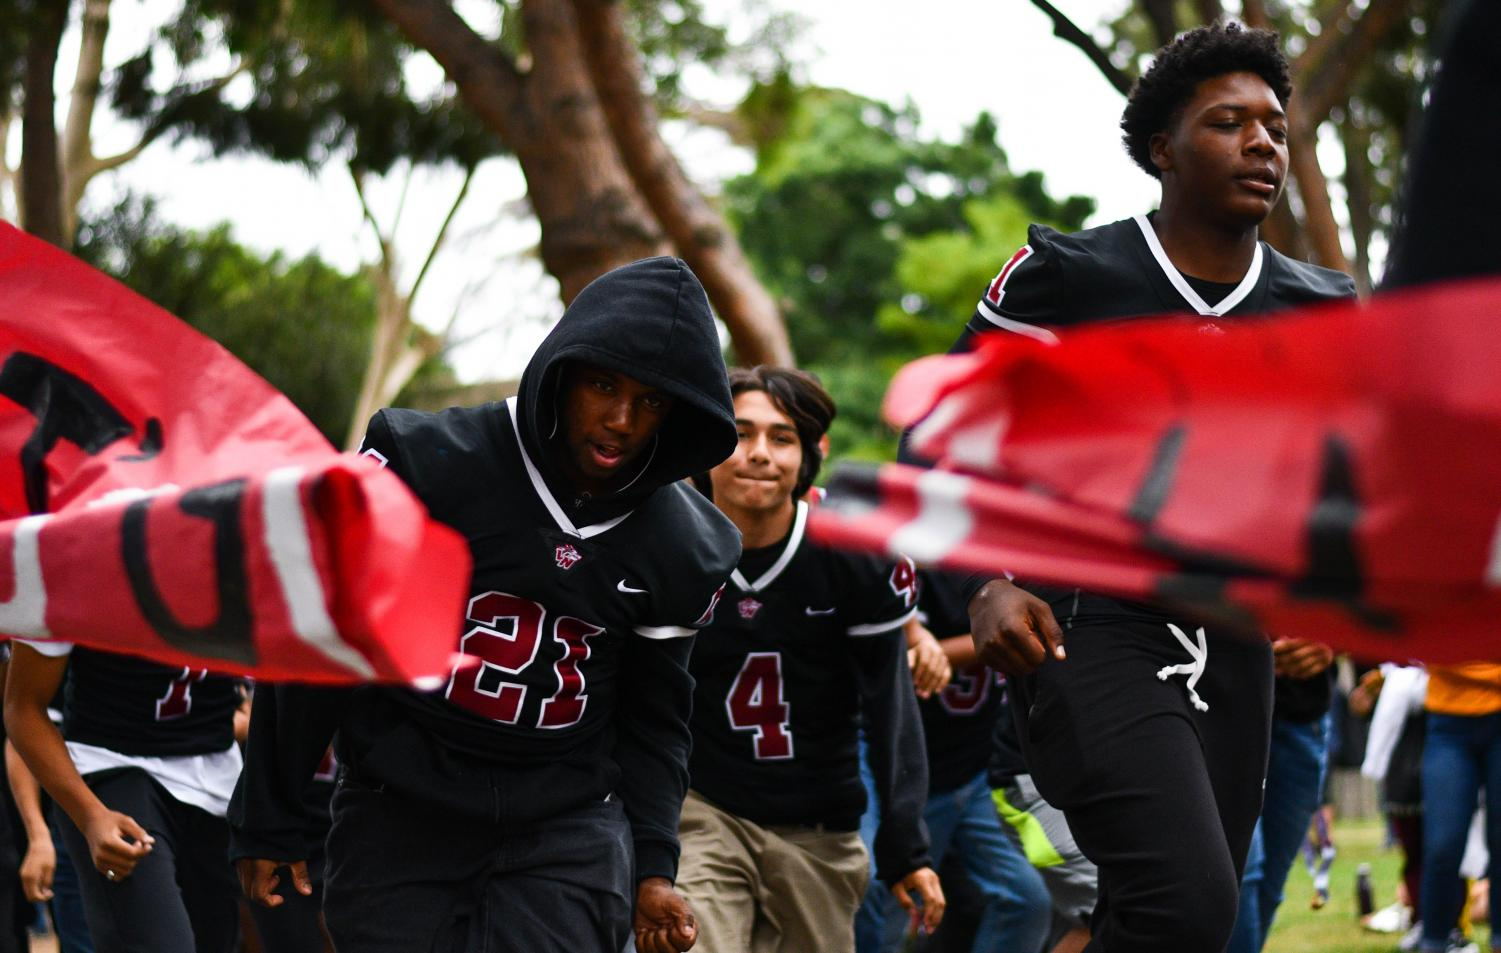 On September 27, 2019 the school prepares for the game against Kennedy.